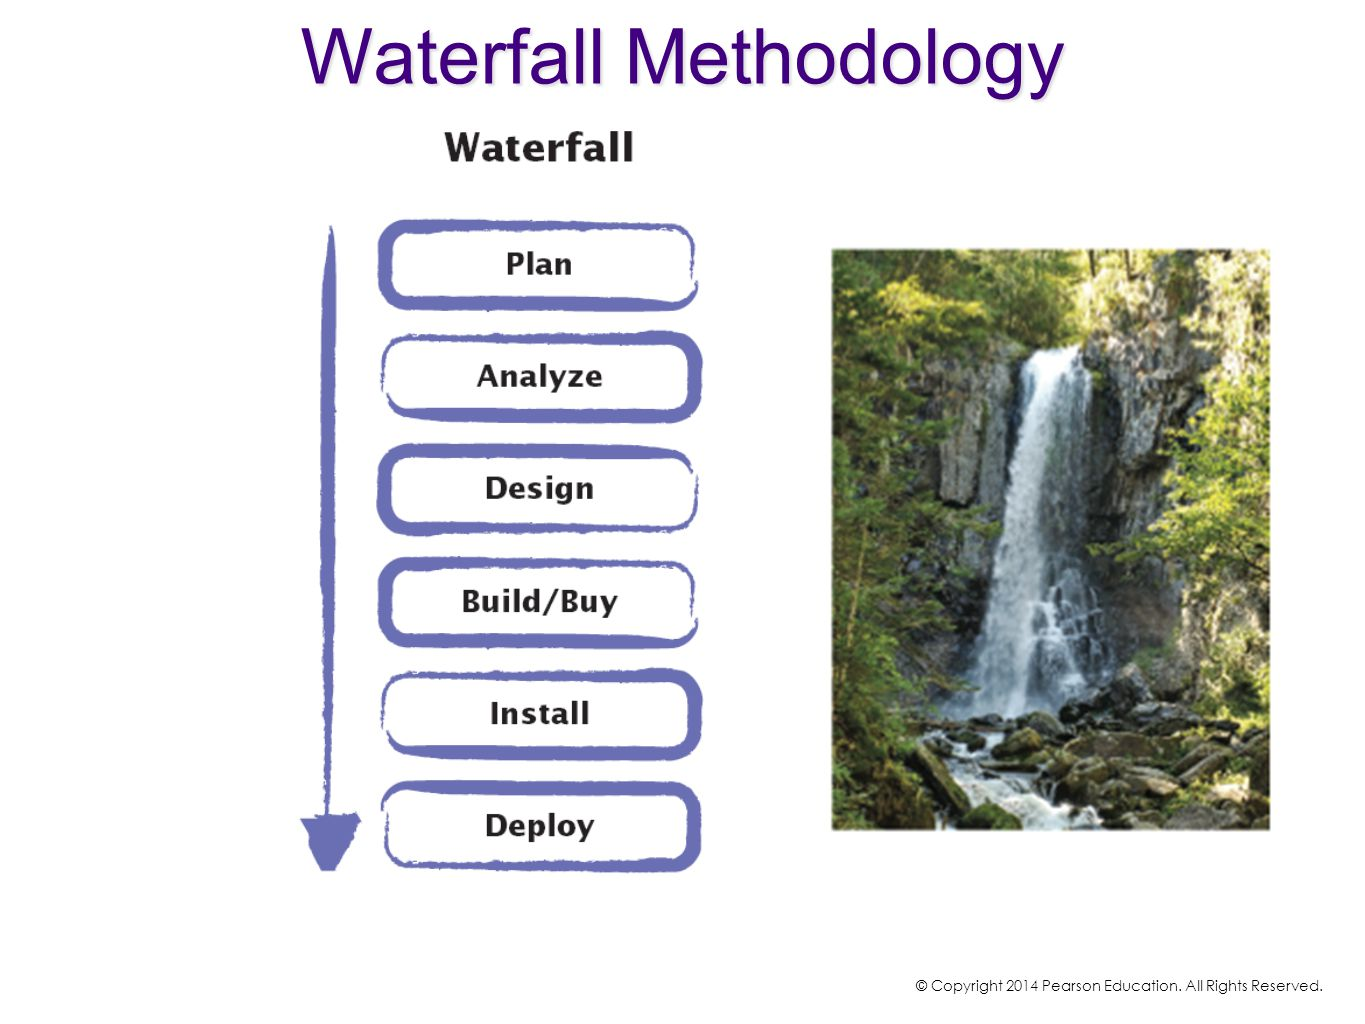 Waterfall Methodology © Copyright 2014 Pearson Education. All Rights Reserved.